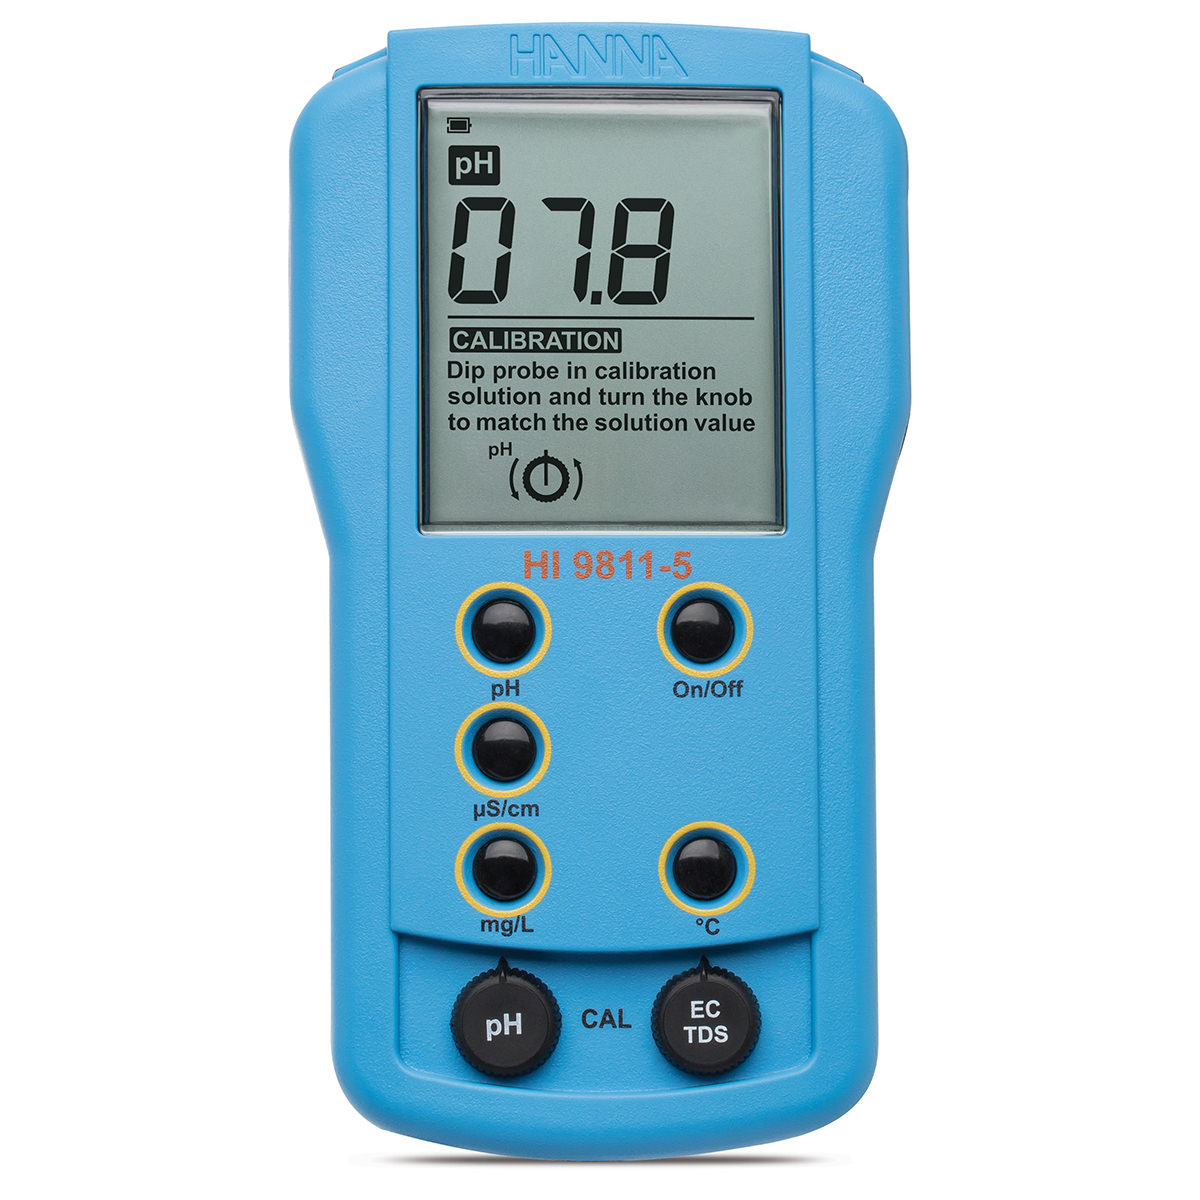 Portable pH/EC/TDS/Temperature Meter - HI9811-5